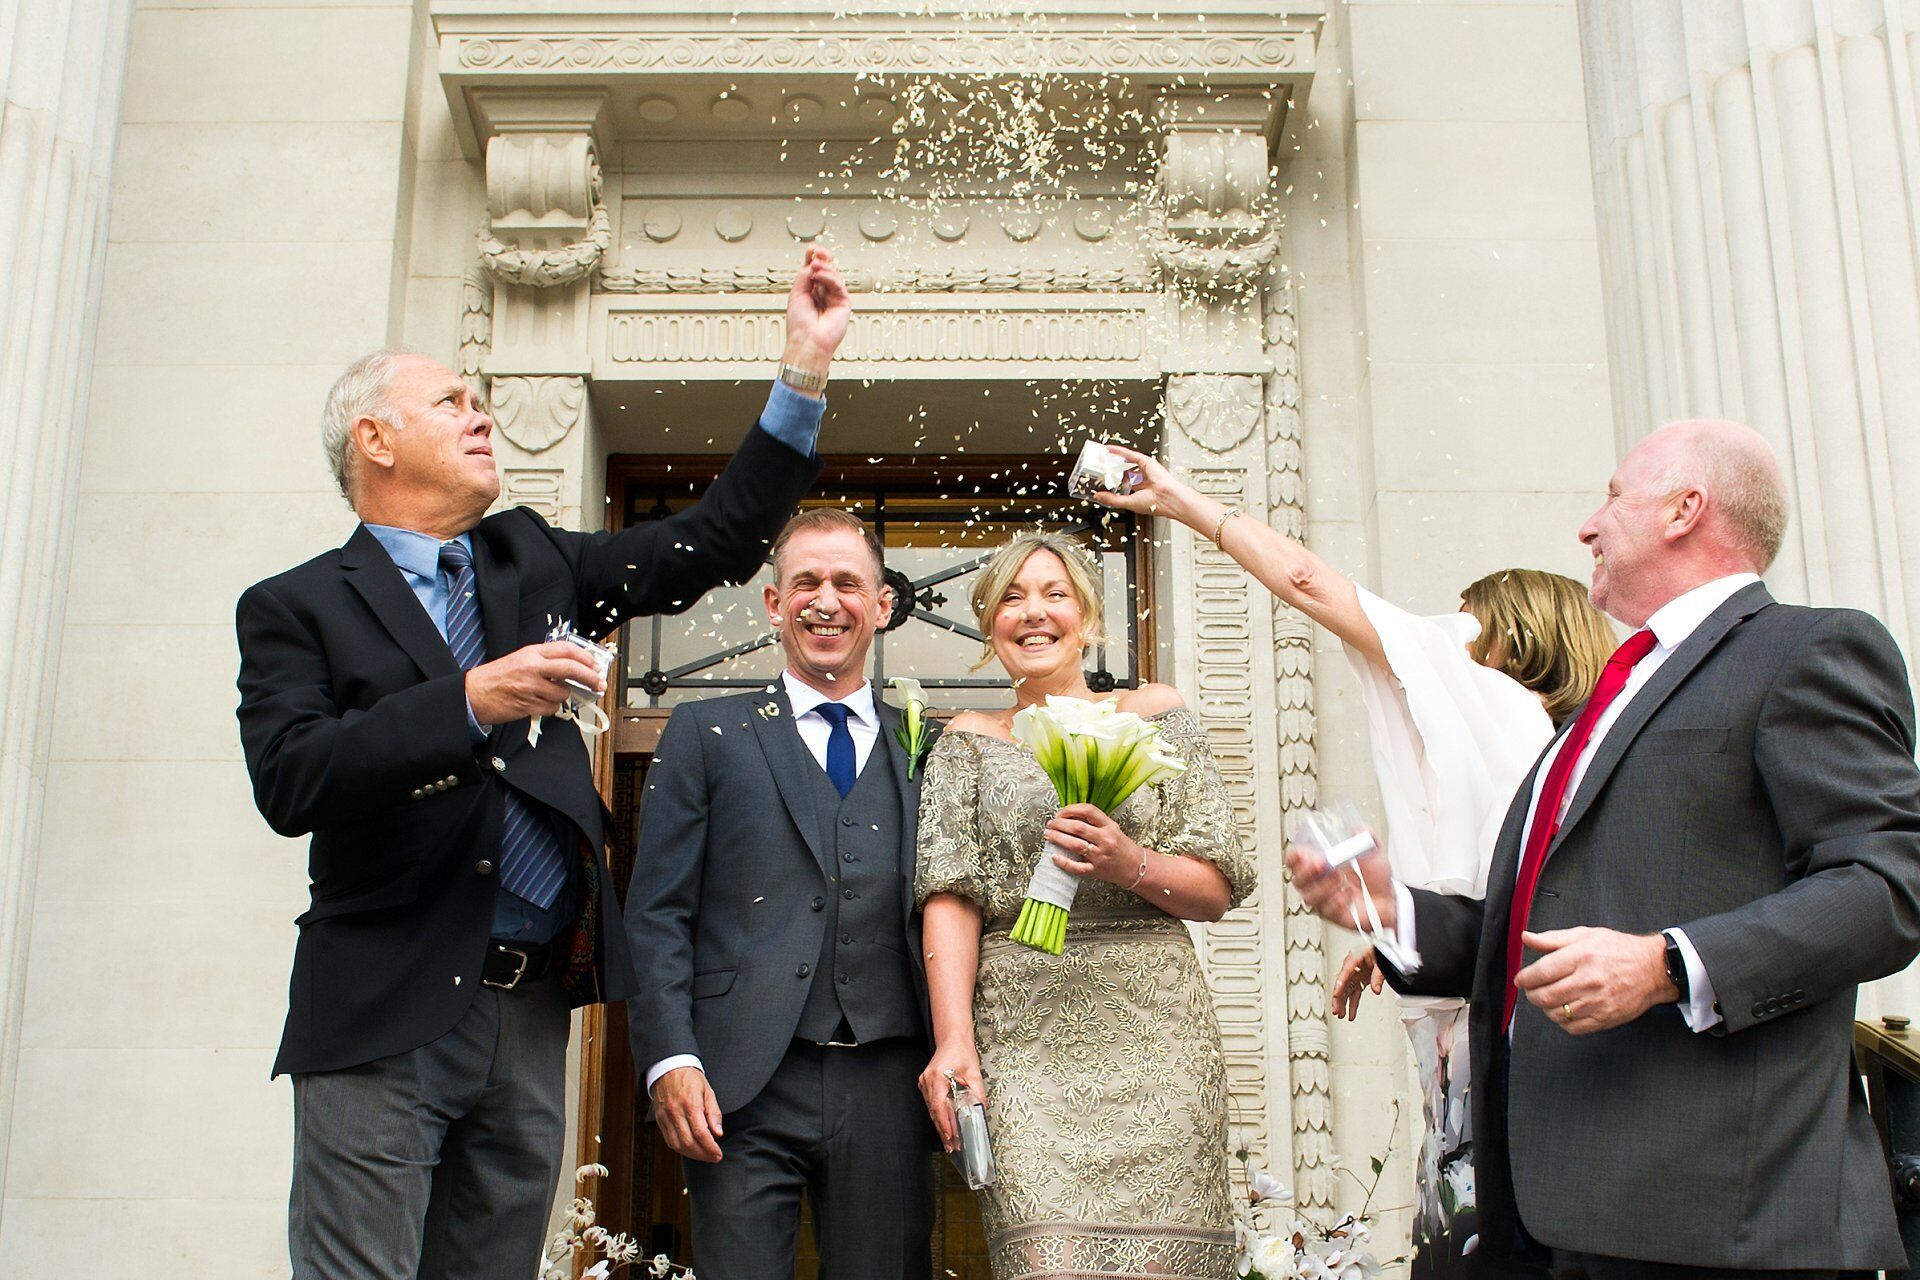 brenda and michael leave old marylebone town hall under a hail of confetti thrown by their three guests